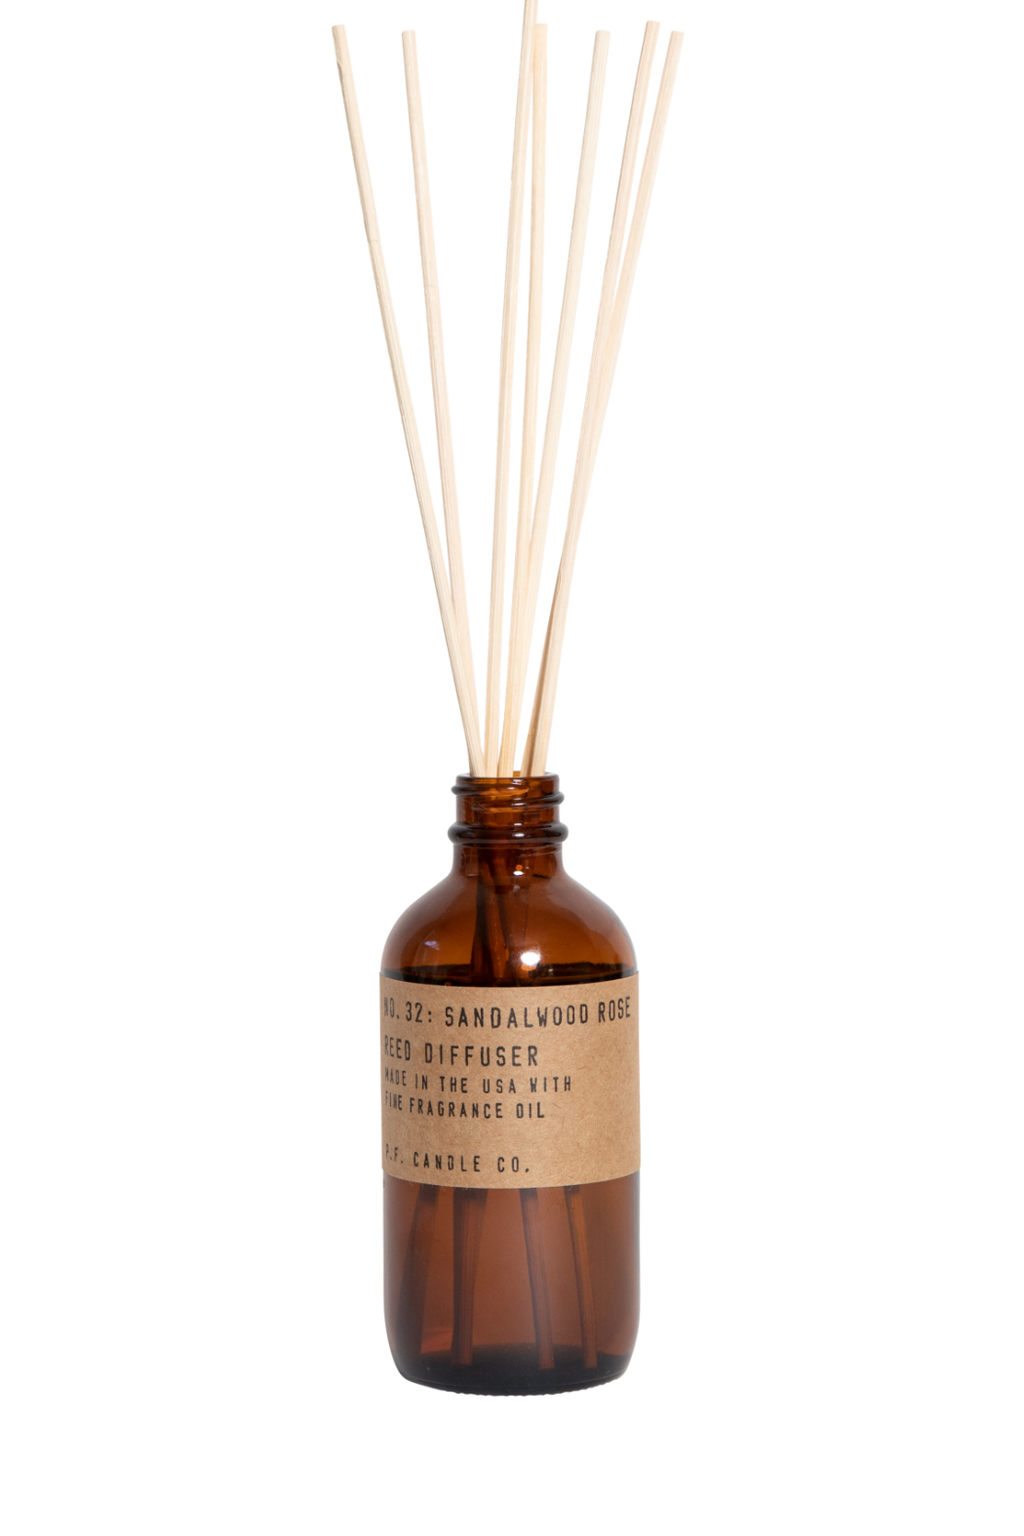 P.F. Candle Co Sandalwood Rose Diffuser